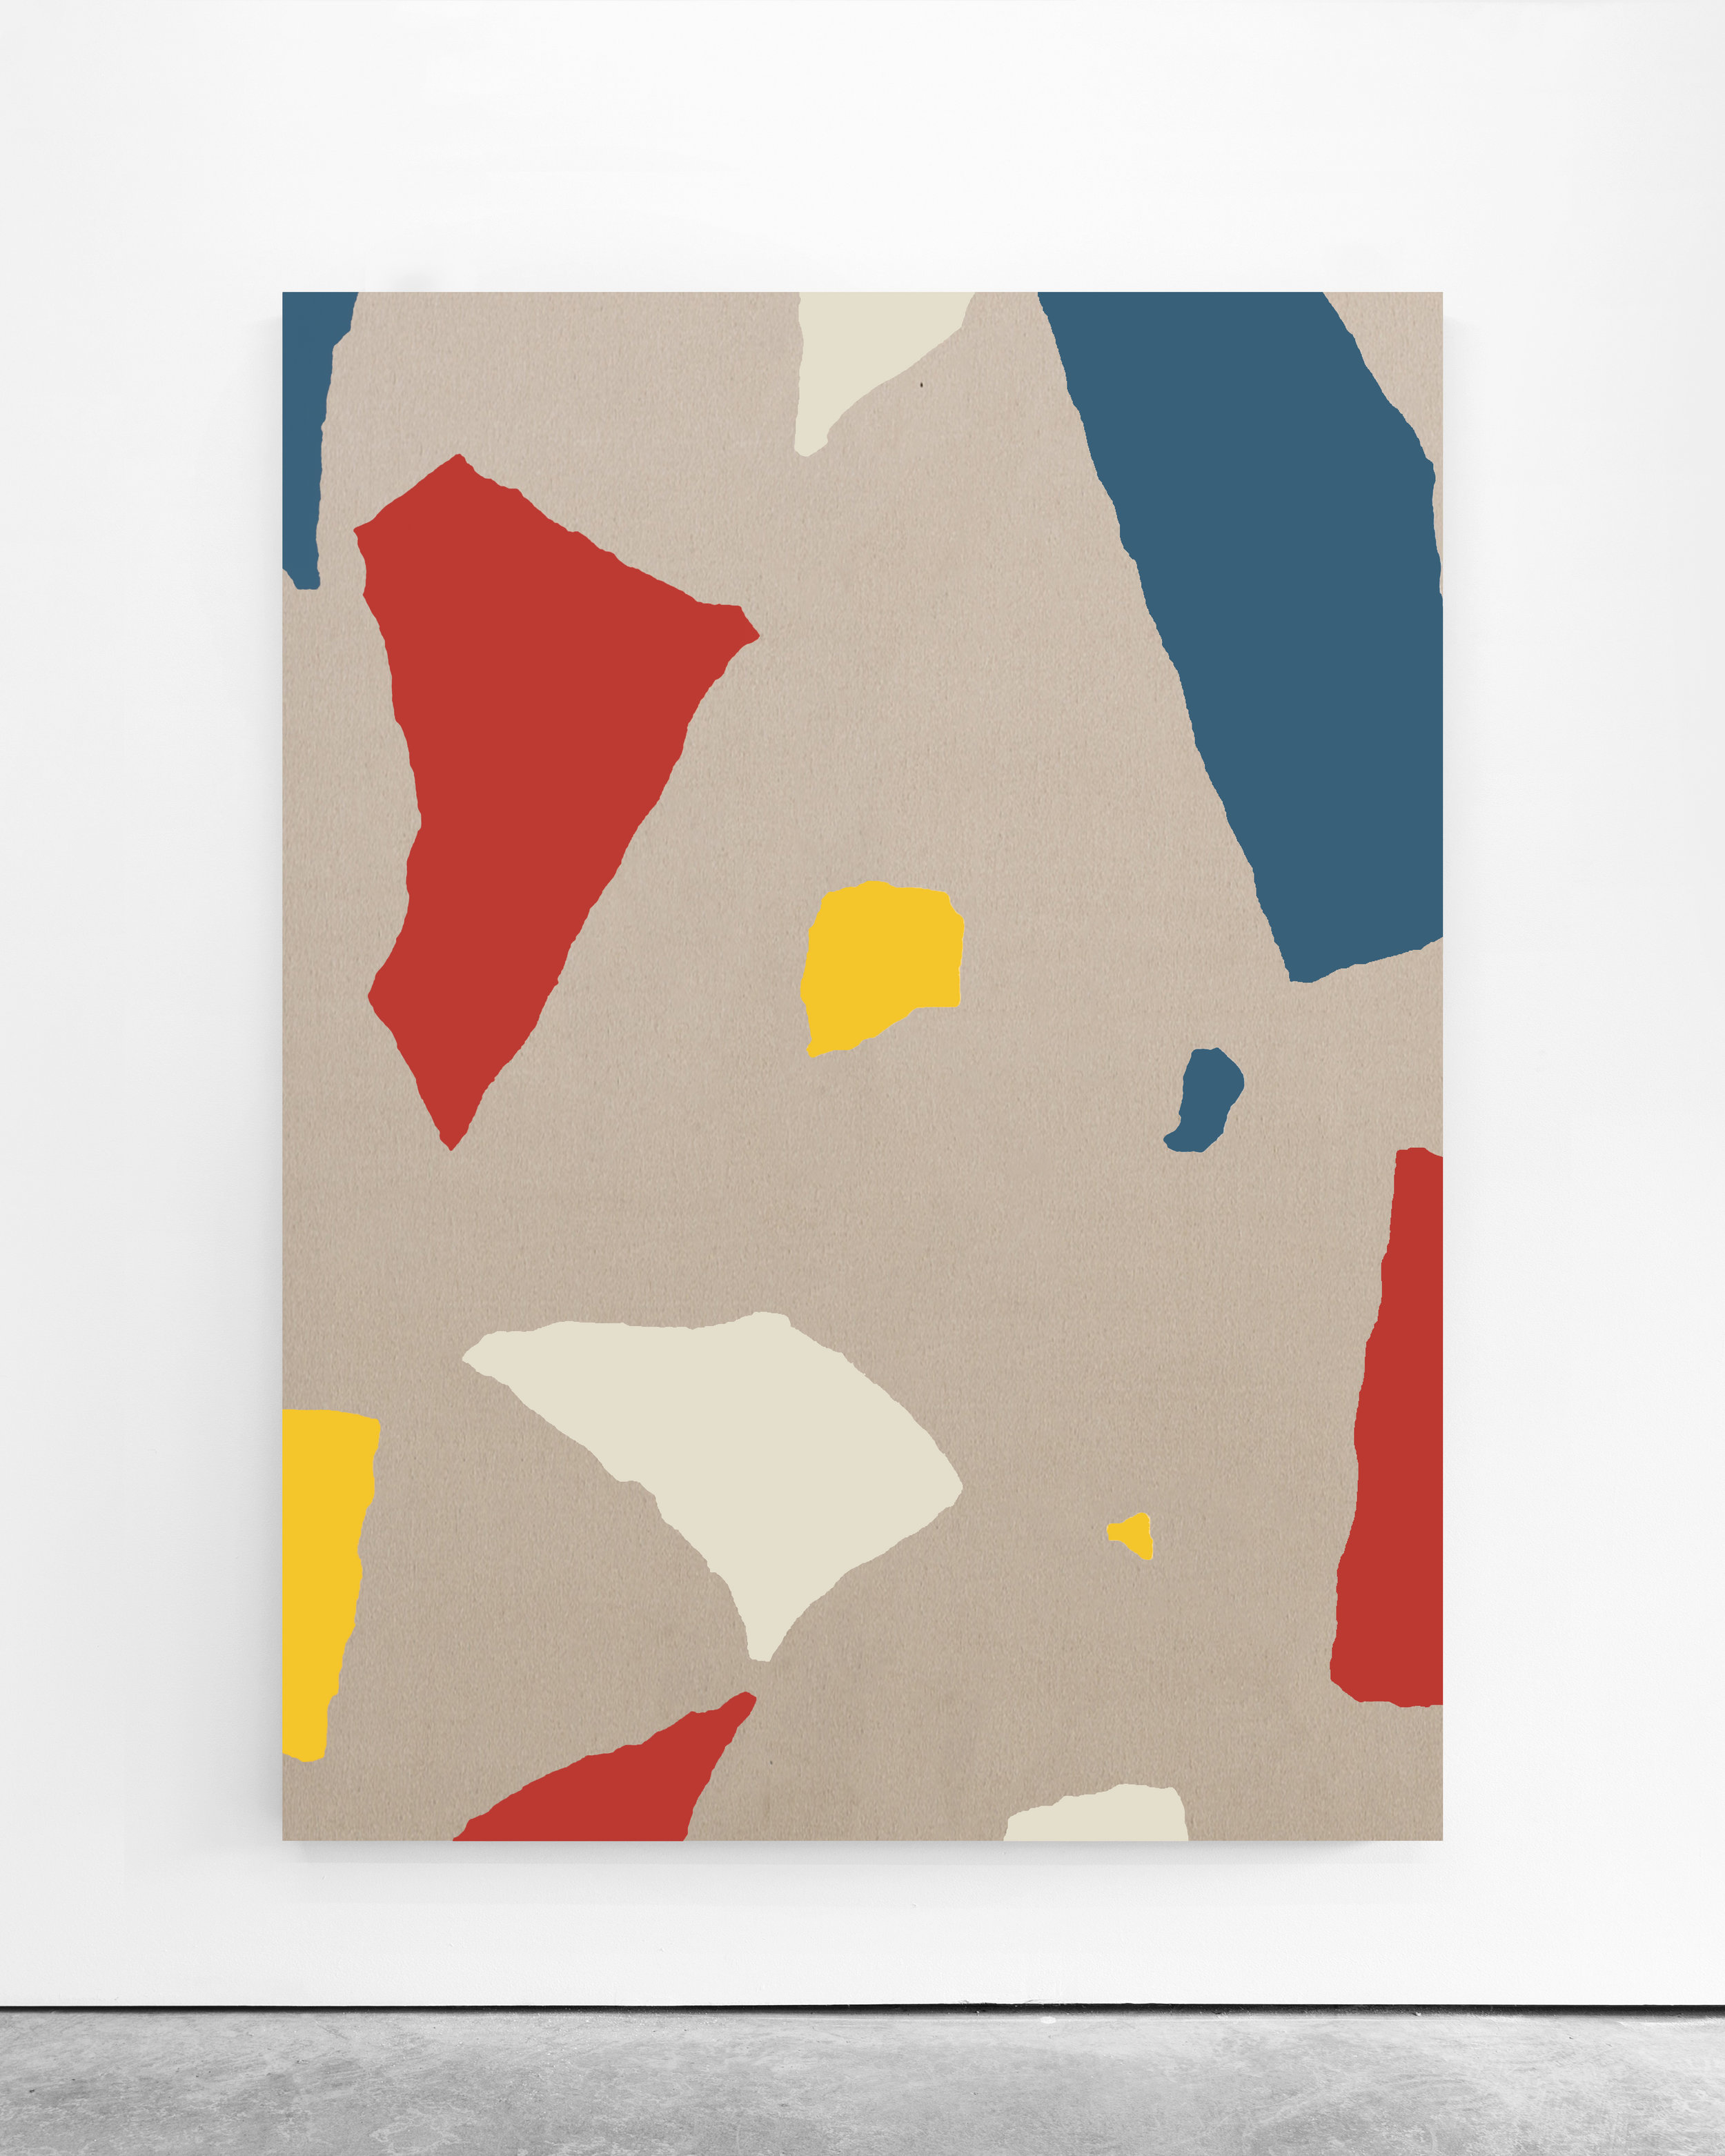 Pedro Matos   Untitled , 2019 Acrylic enamel on unprimed cotton canvas 200 x 150 cm